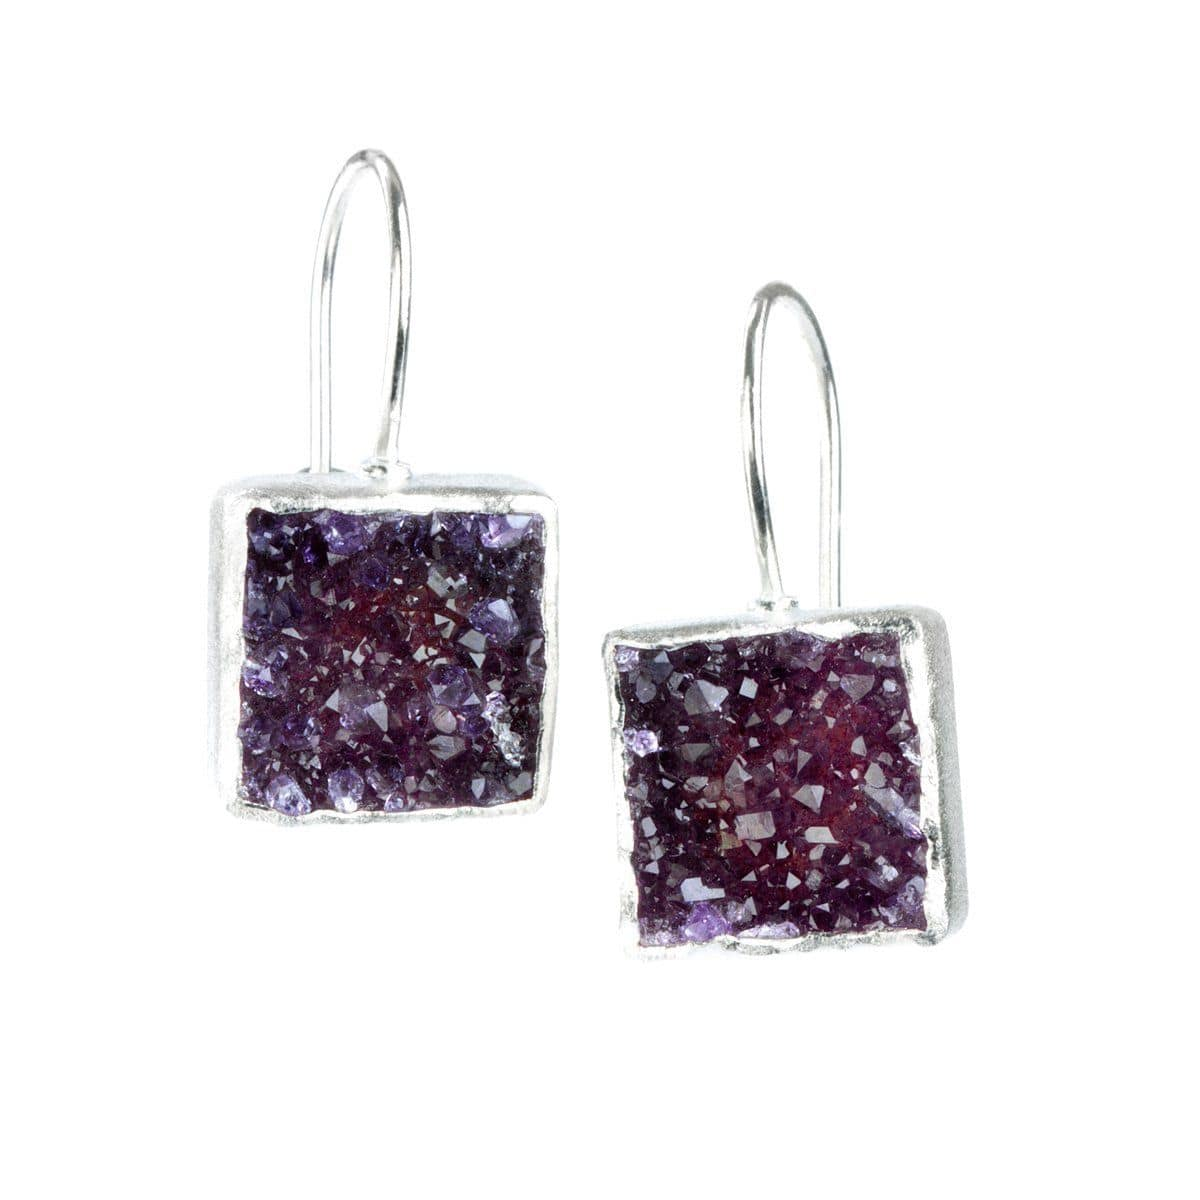 Dharma Sterling Silver with Amethyst Druzy Earrings - S7015E-AMT-Nina Nguyen-Renee Taylor Gallery